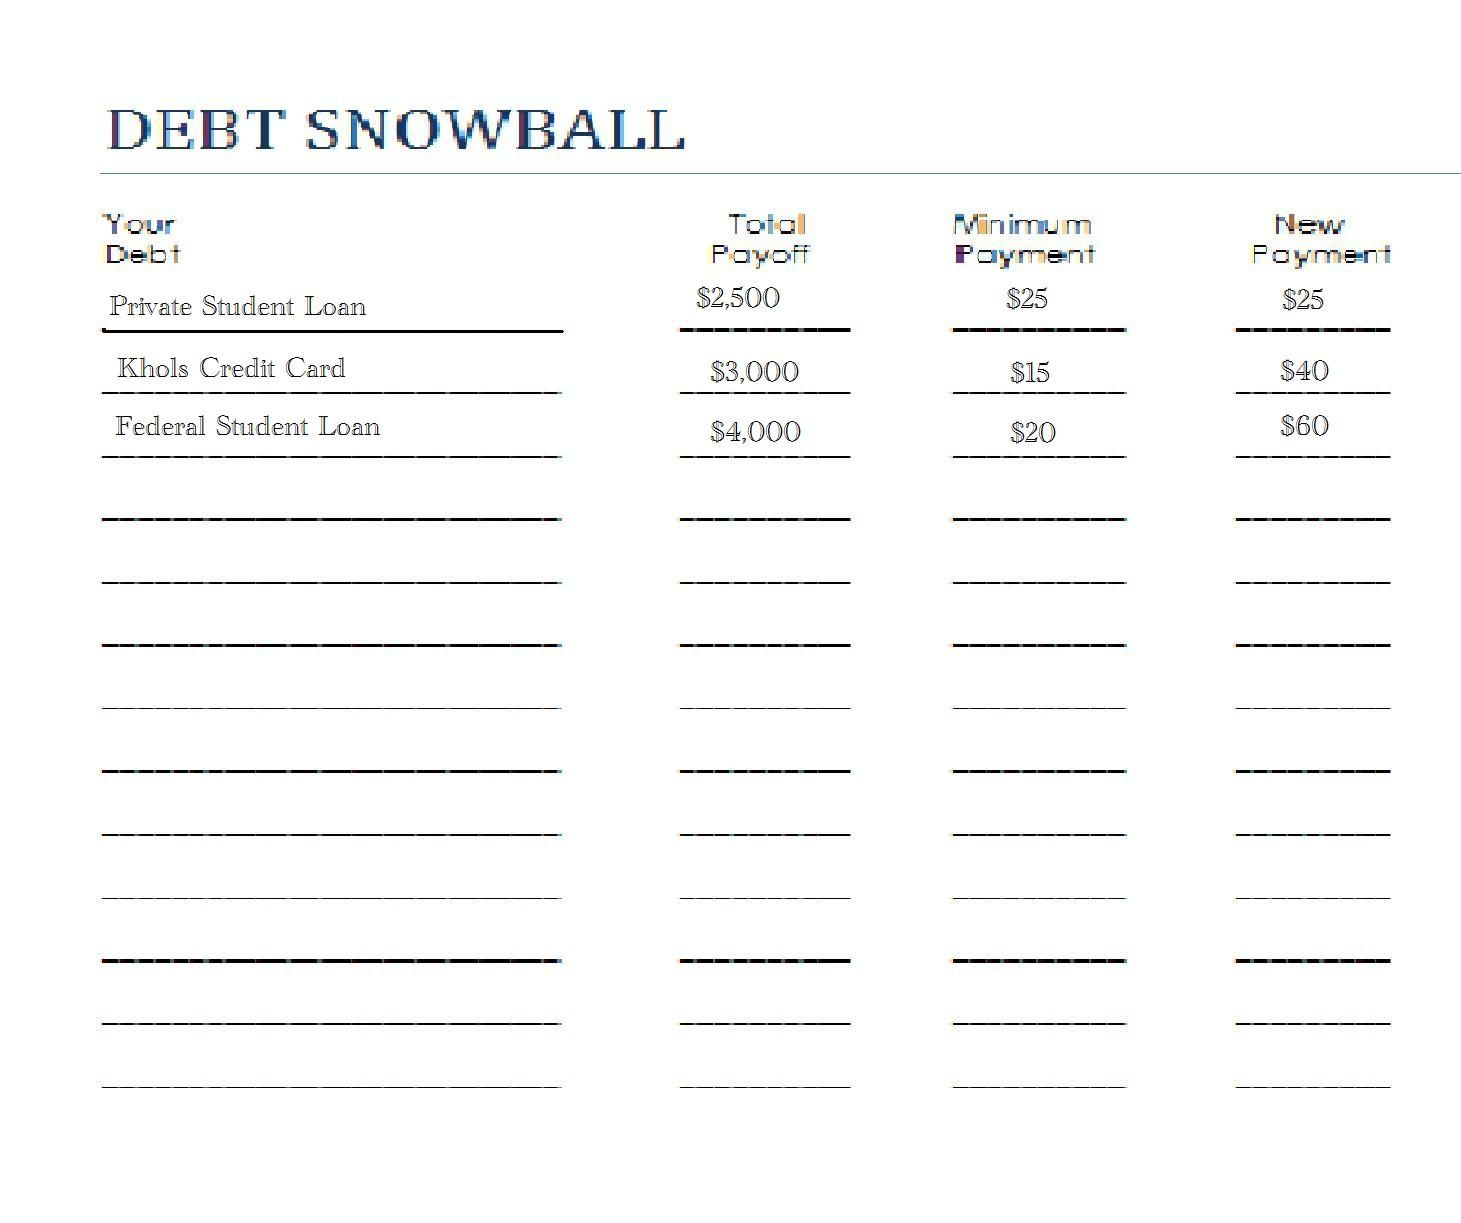 Free Worksheet Dave Ramsey Debt Snowball Worksheet debt snowball calculator template 5 excel templates dave ramsey 1232 1592